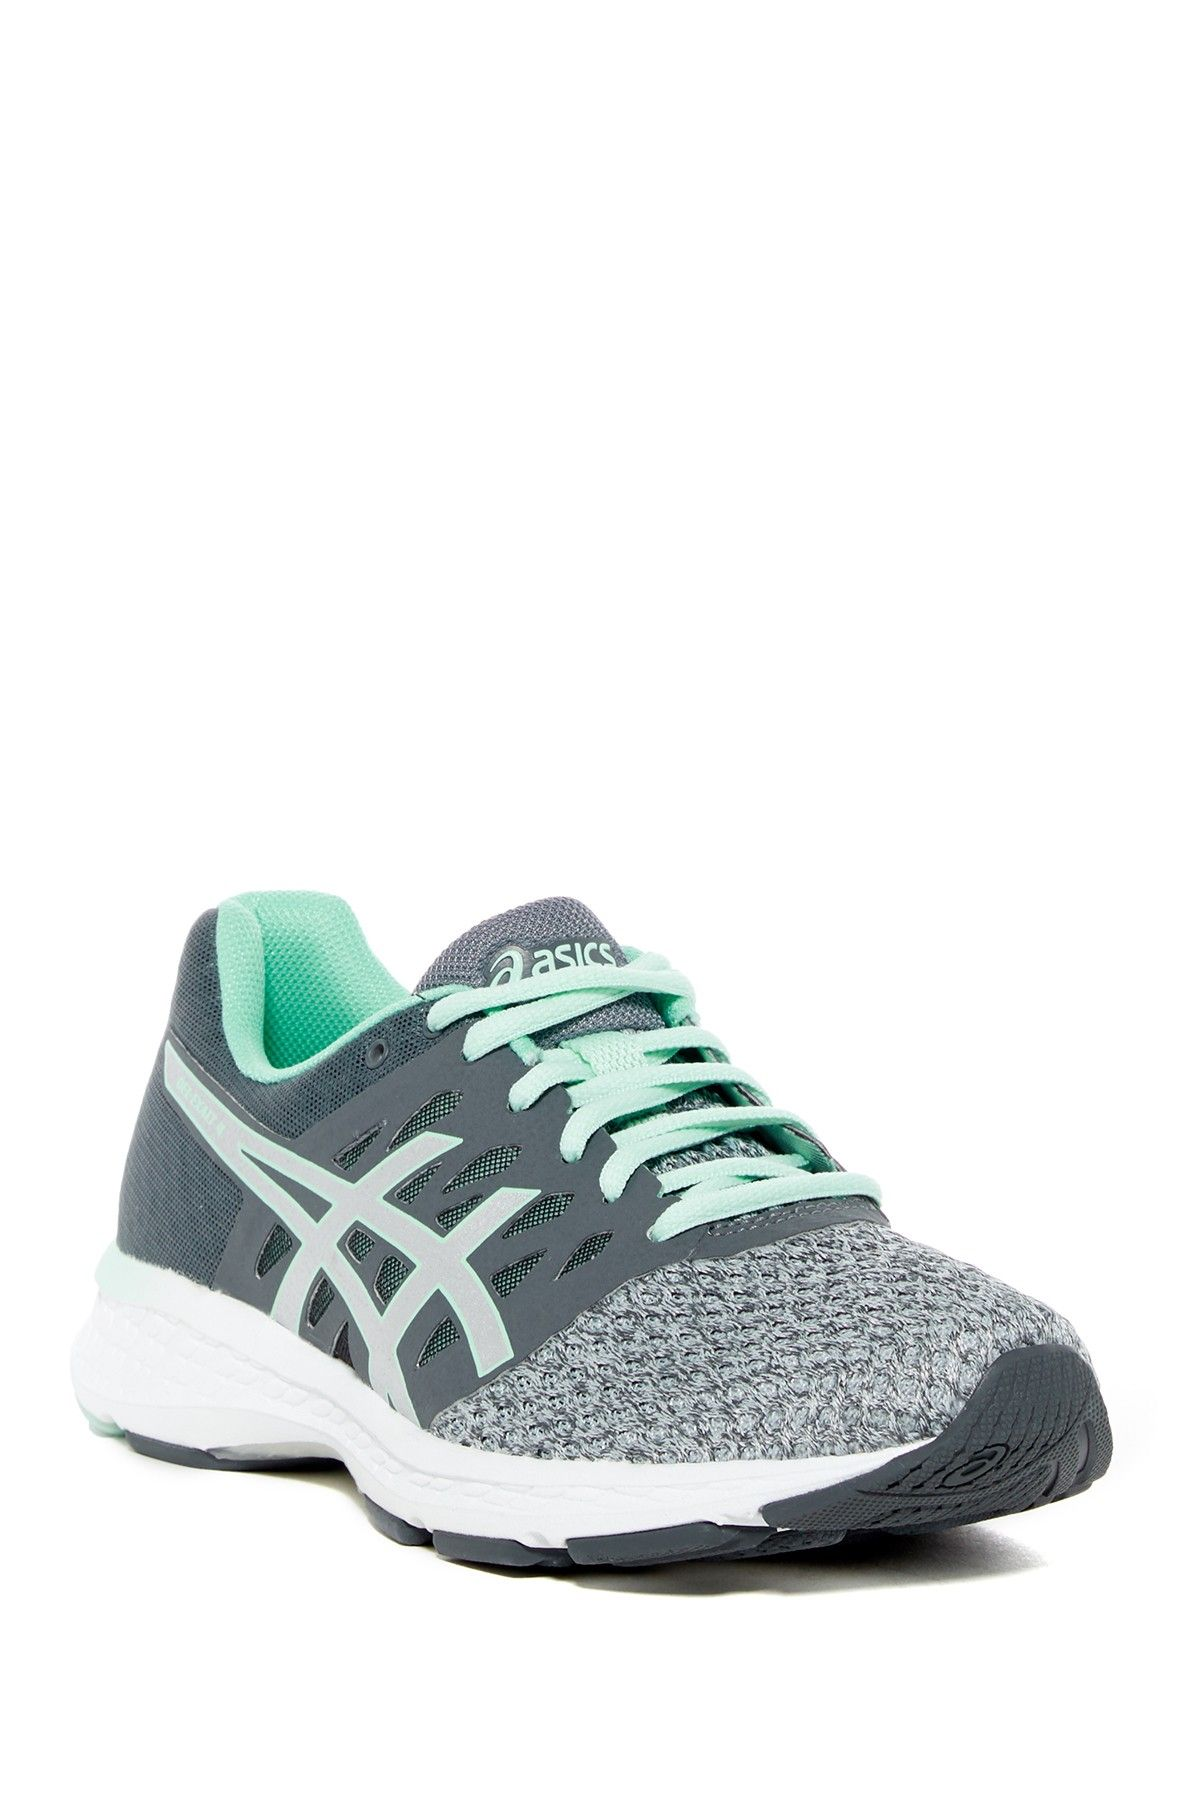 size 40 27ac7 fbb03 Asics GEL-Exalt 4 Running Sneaker | Products | Sneakers ...